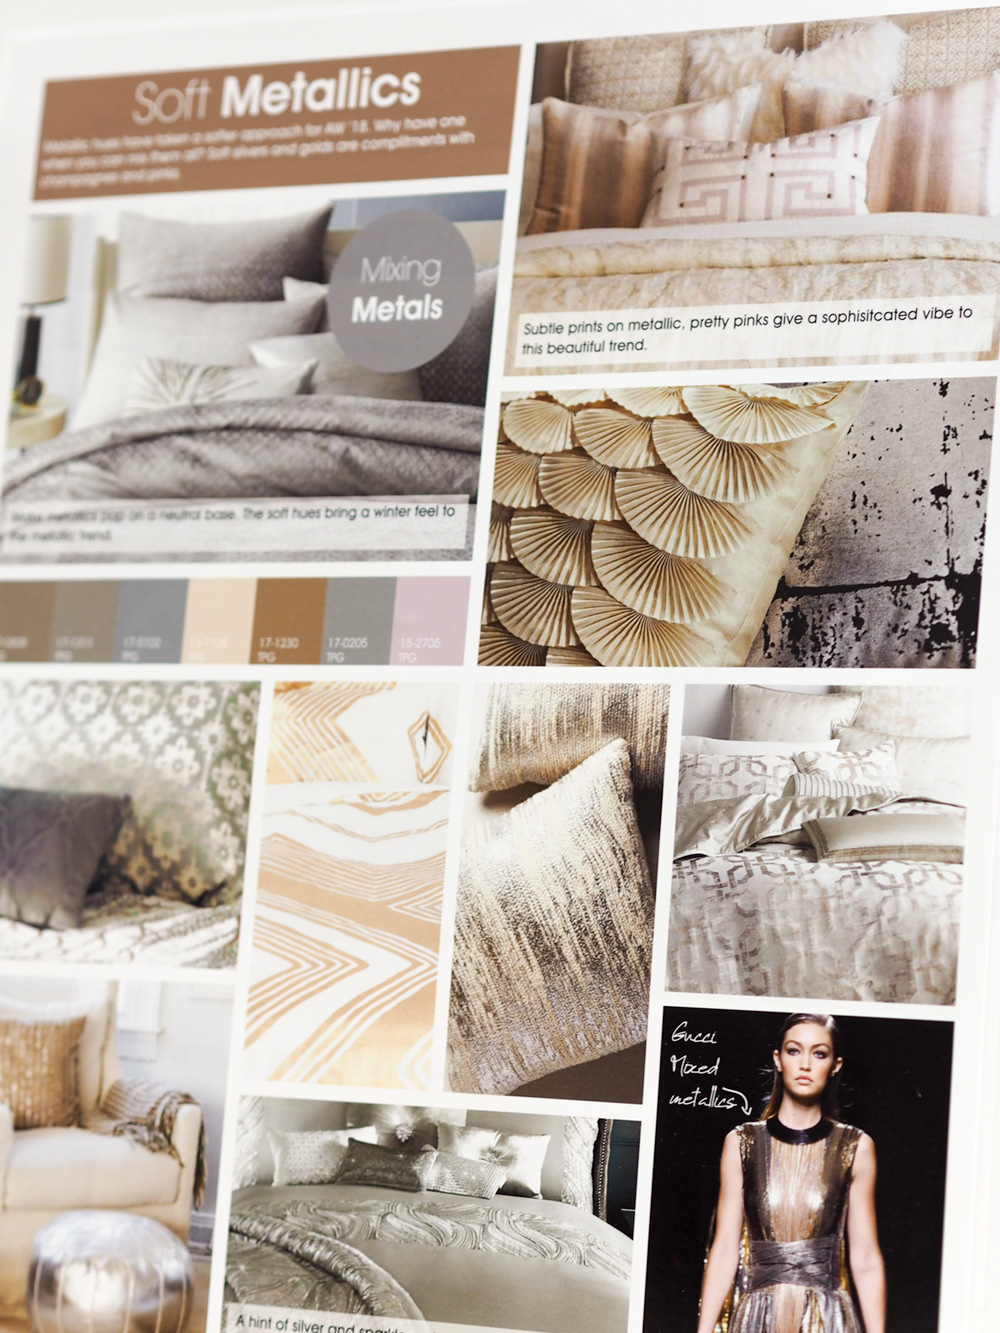 Soft metallics trend report from Studio.co.uk